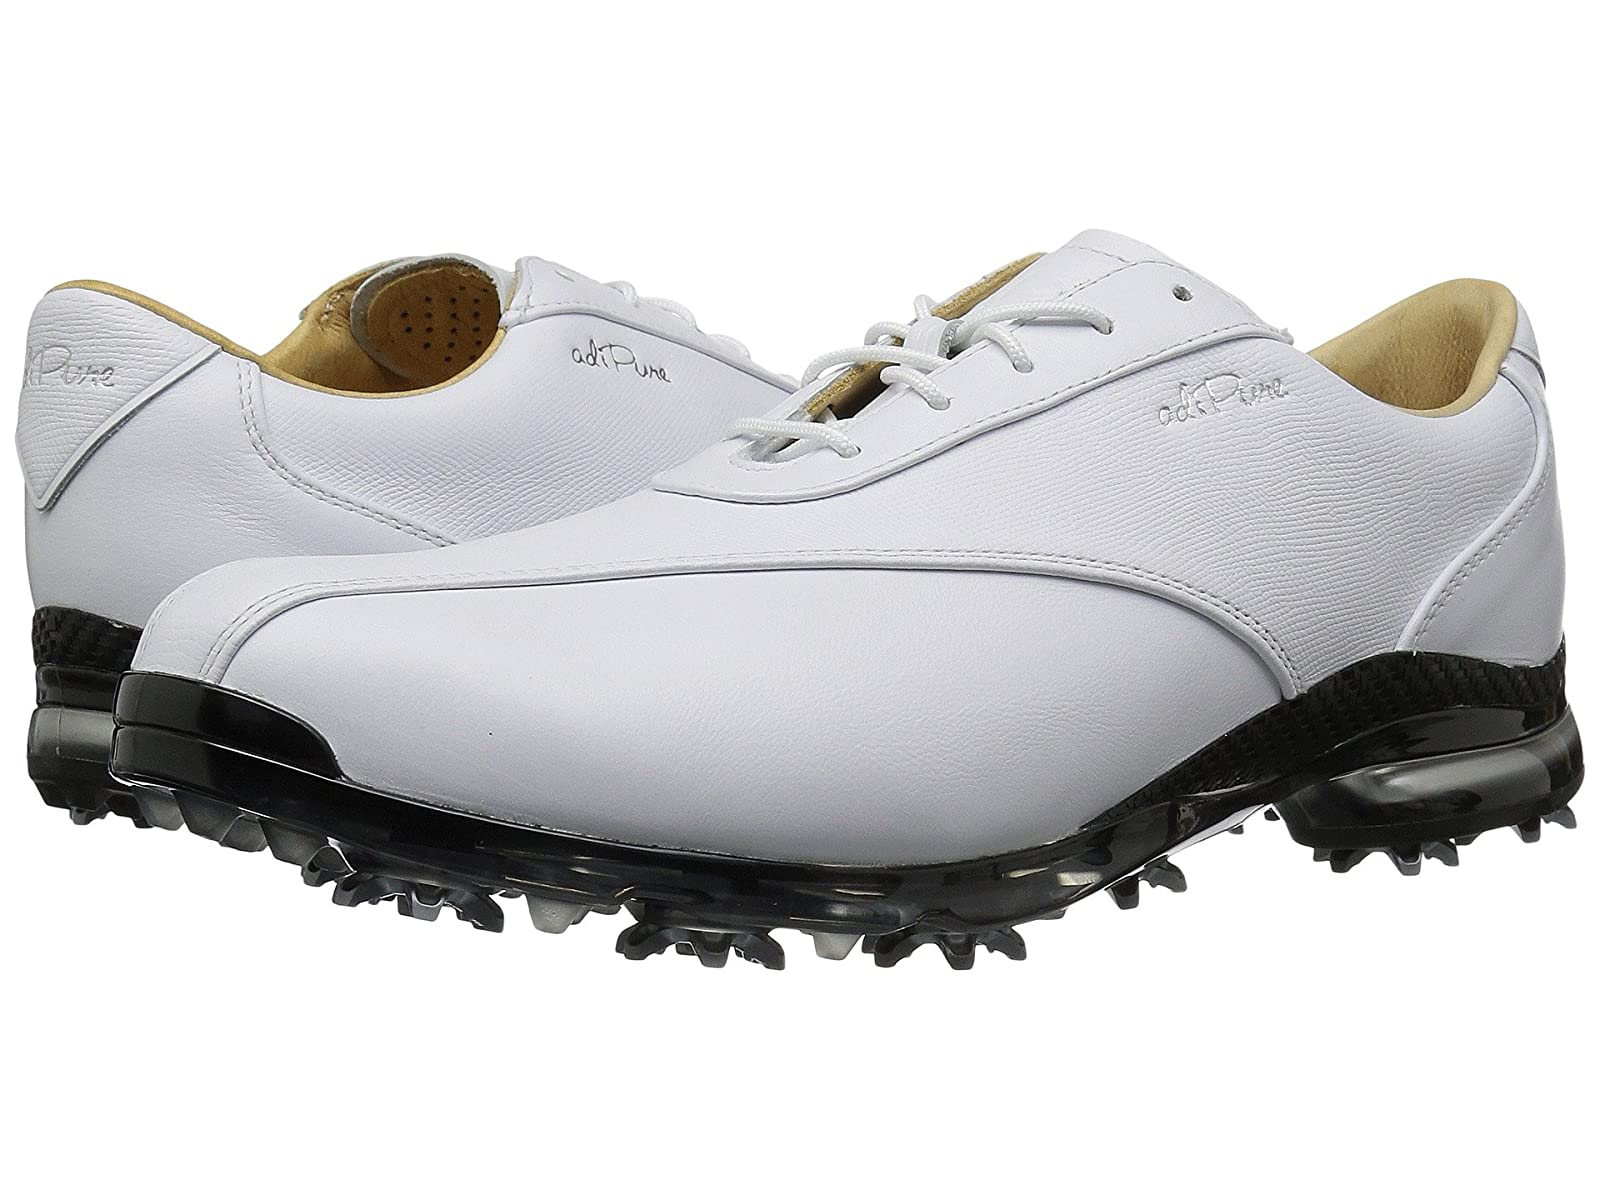 adidas Golf Adipure TP 2.0Atmospheric grades have affordable shoes